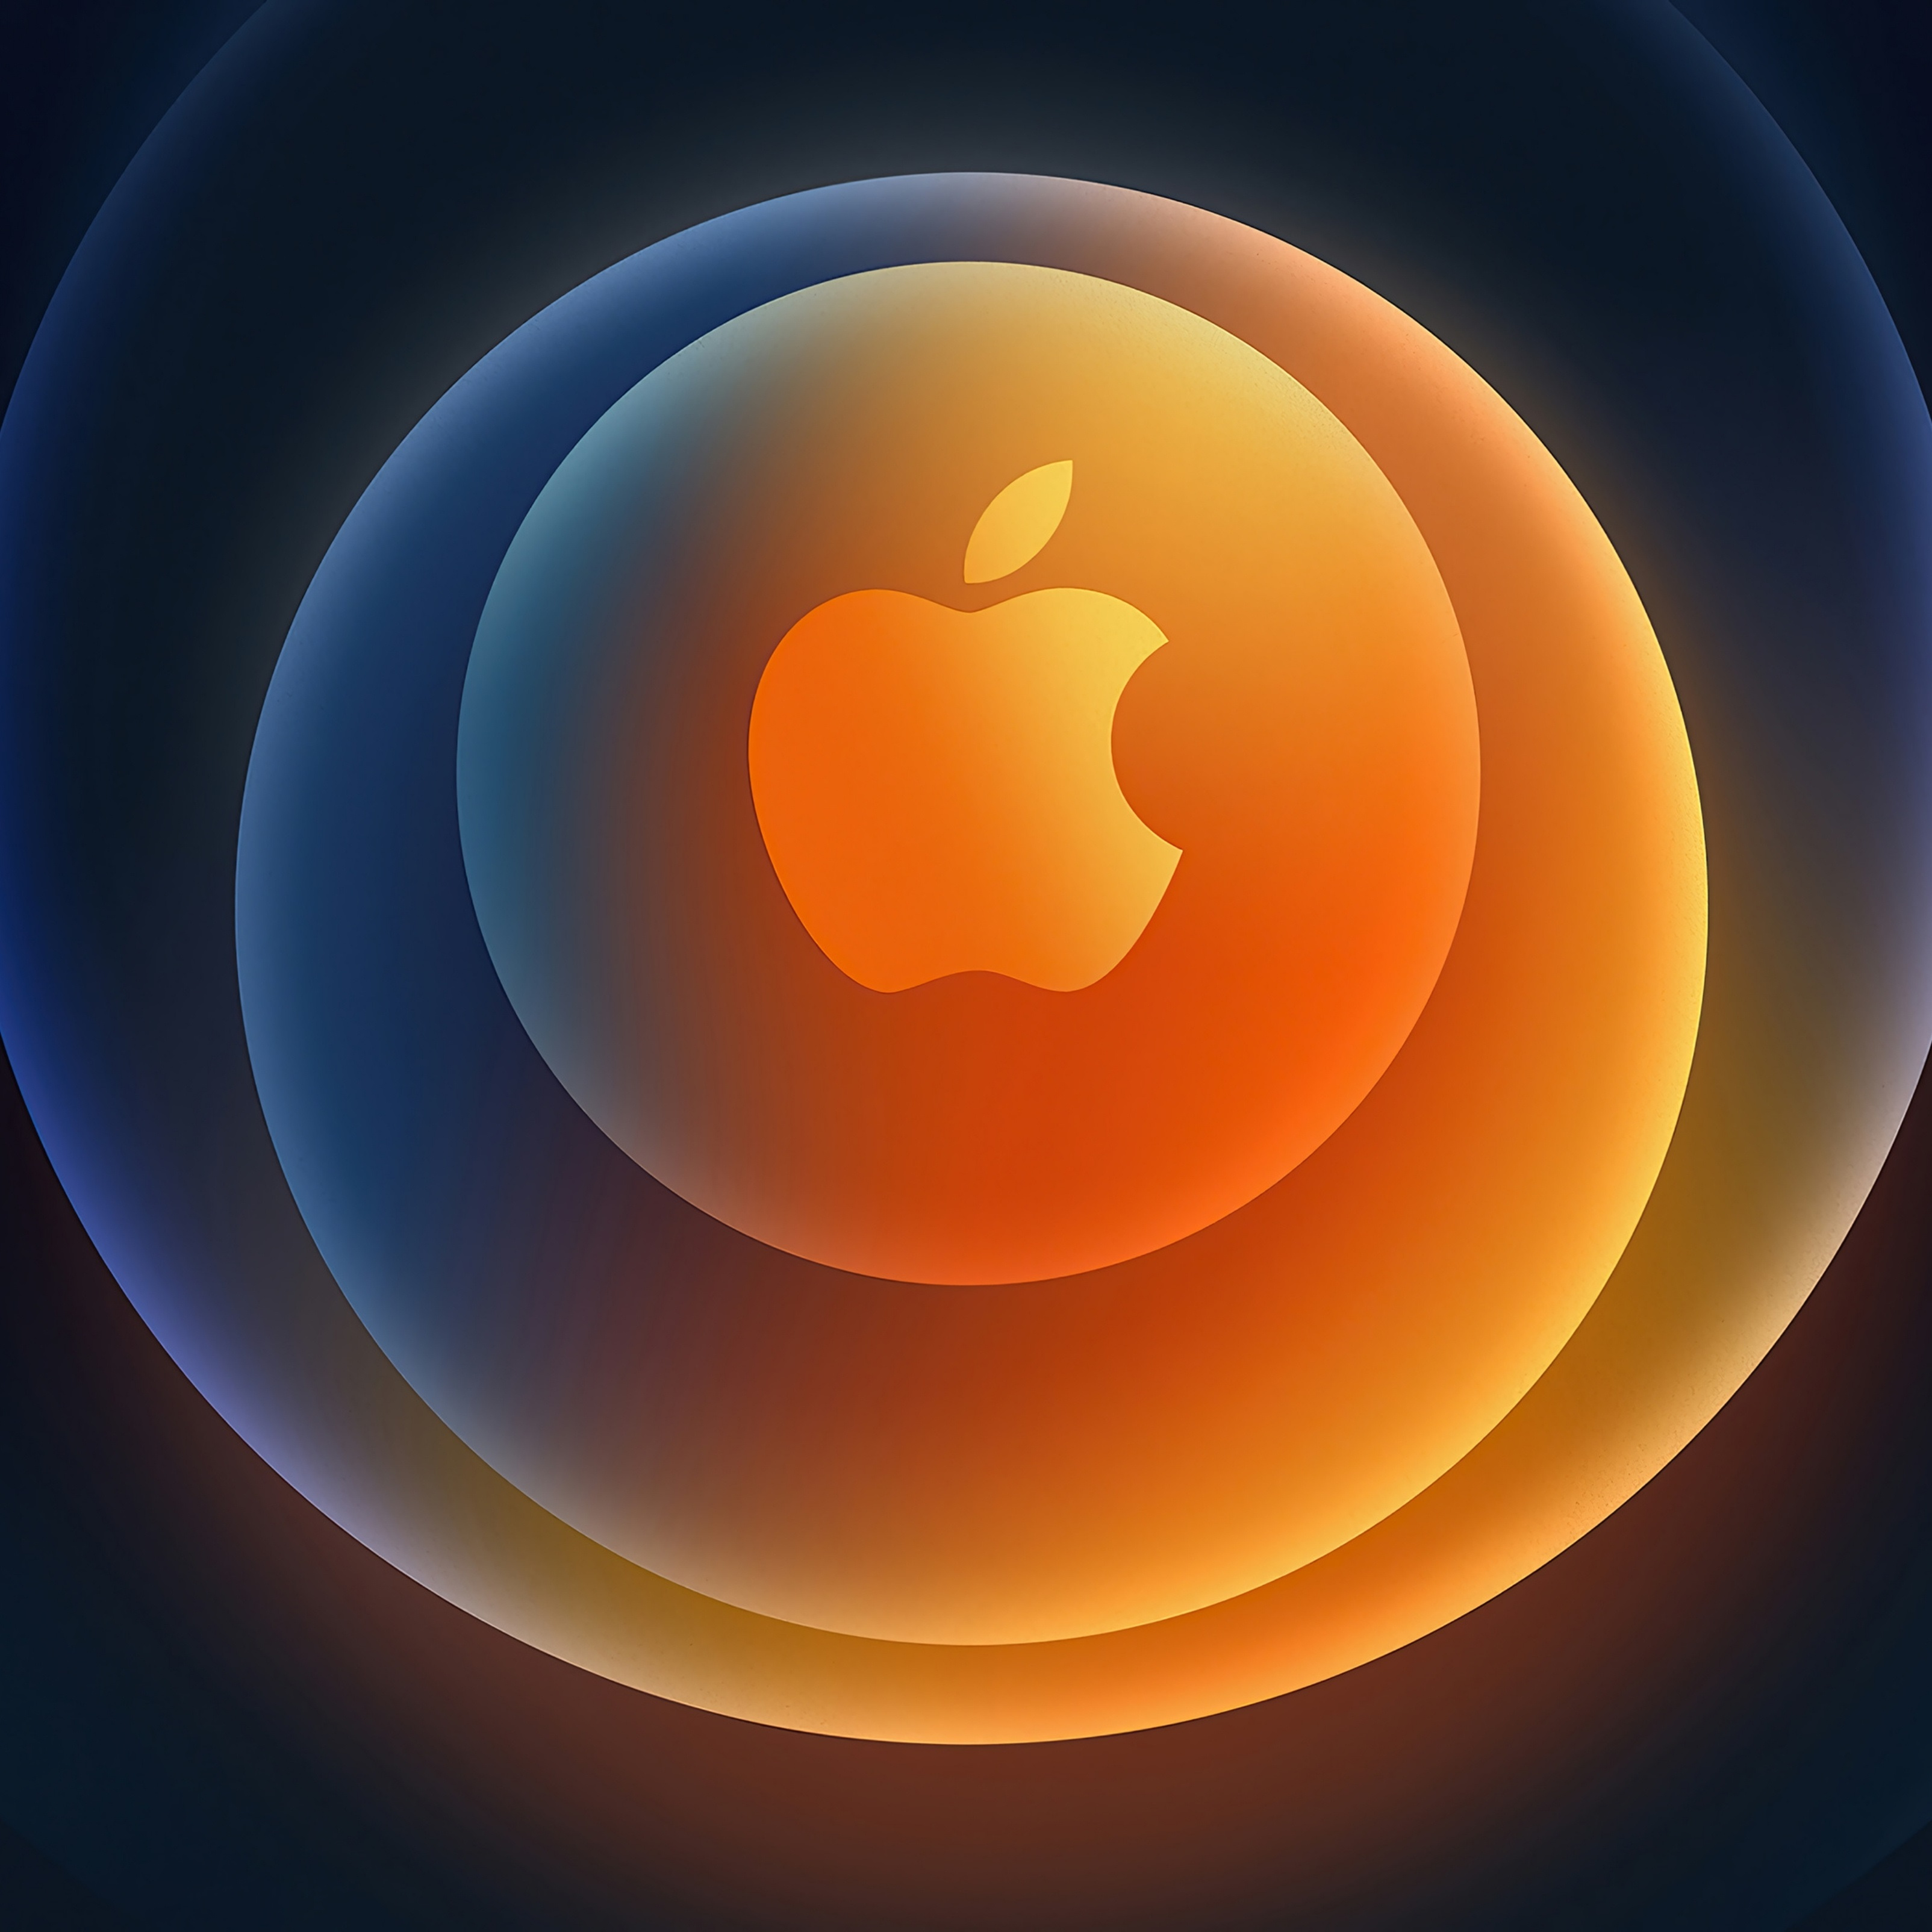 iPad Wallpapers iPhone 12 Apple Logo Circles iPad Wallpaper 3208x3208 px